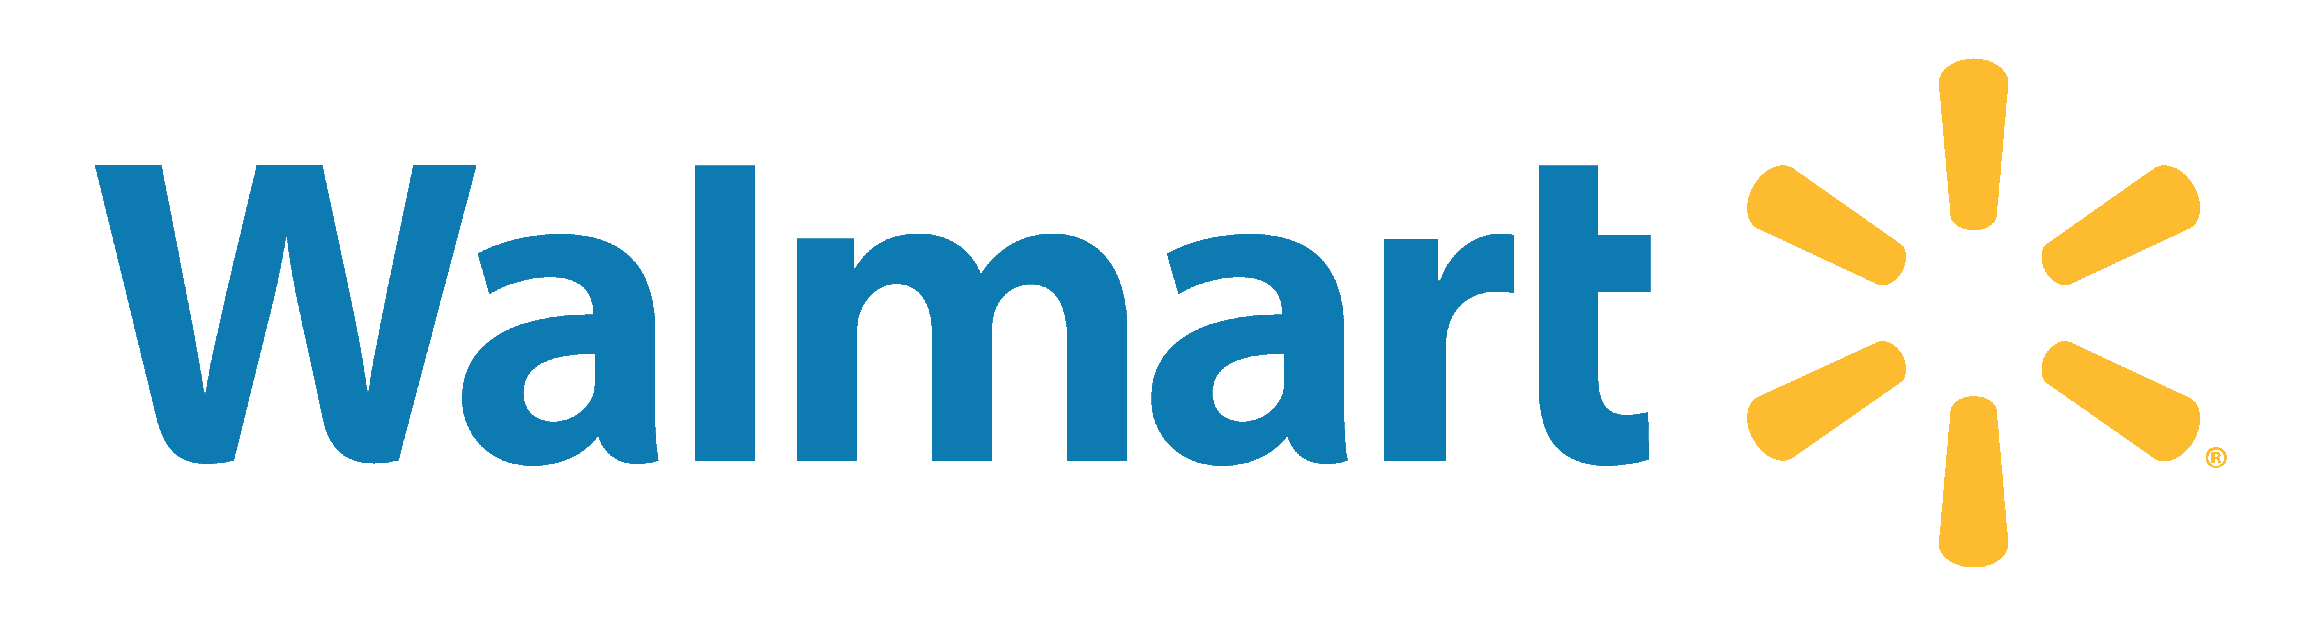 Walmart logo and symbol, meaning, history, PNG